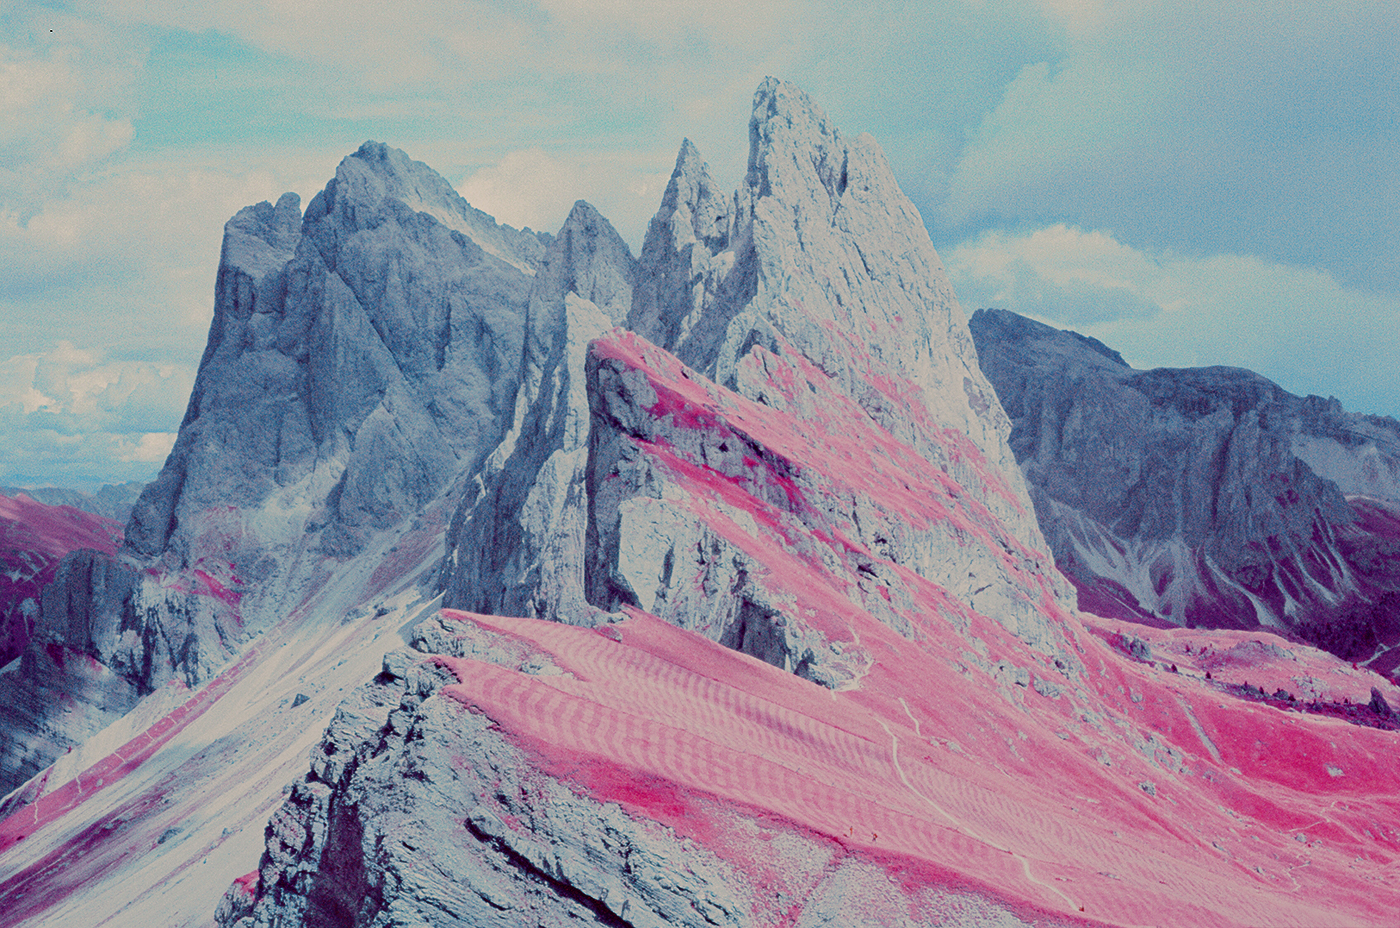 Dolomites in Infrared by Andrea and Francesco Padovani